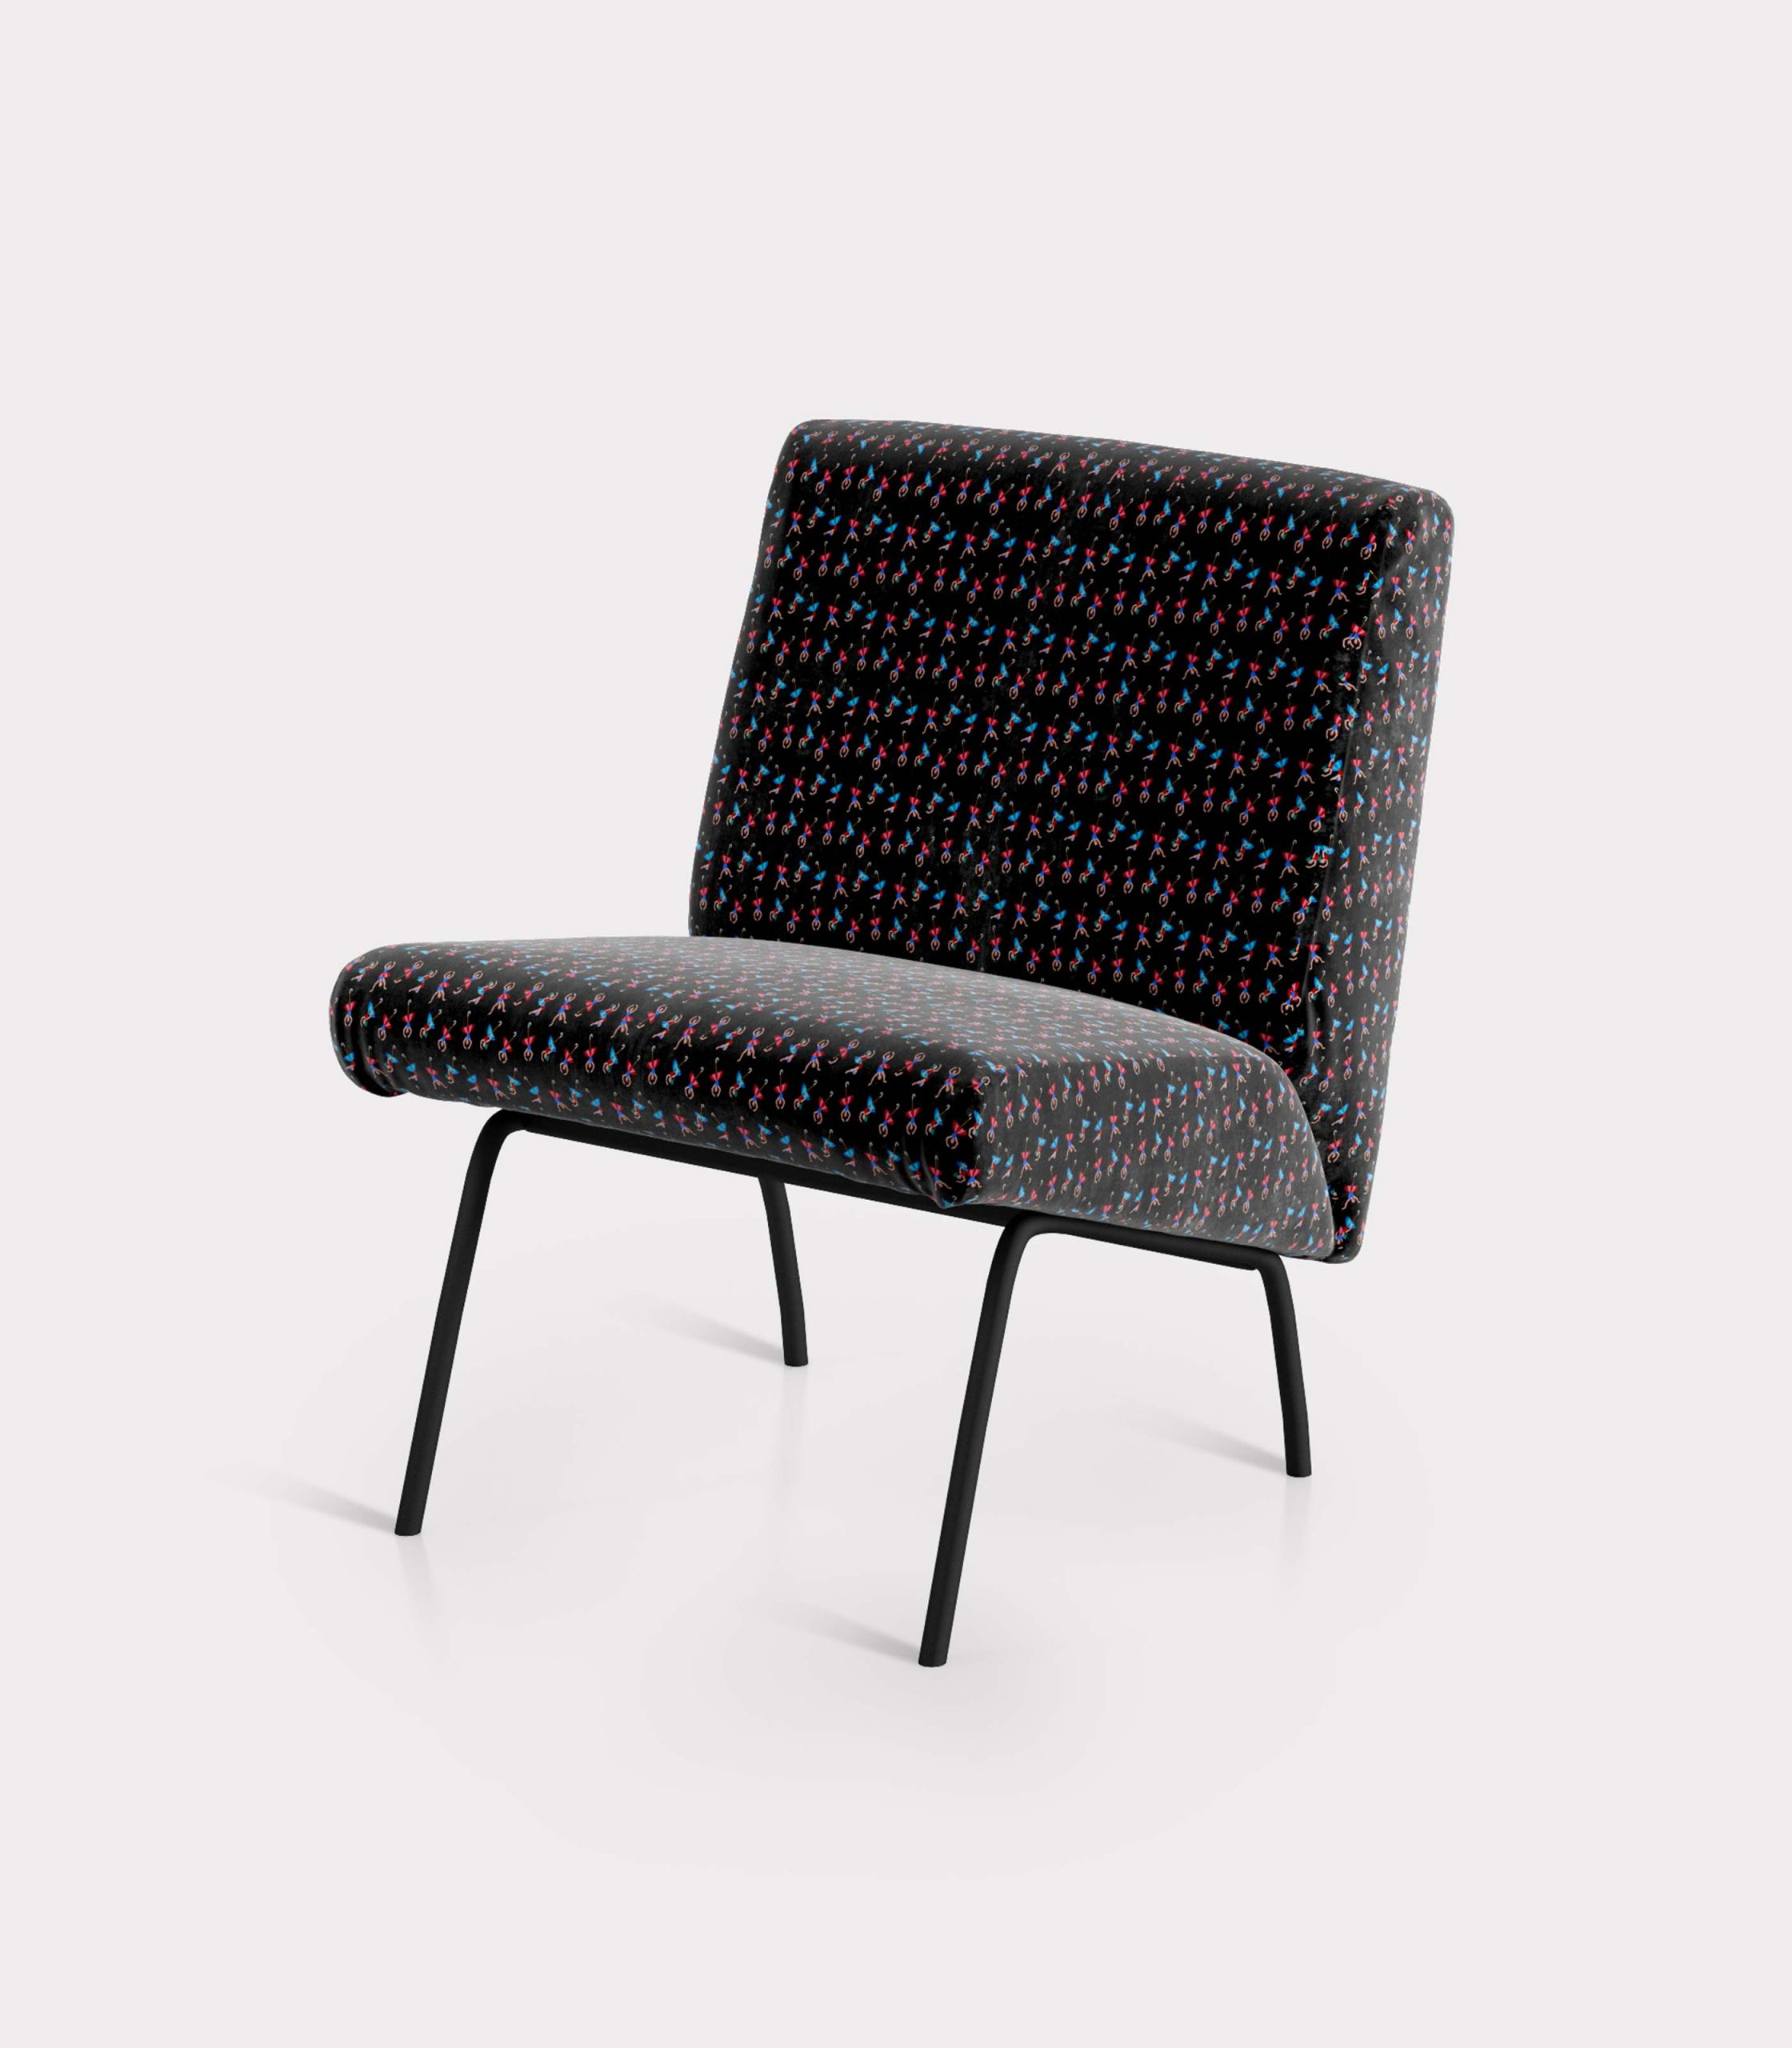 """Armchair with """"Dancers and Umbrellas"""" pattern loopo milano design FS"""